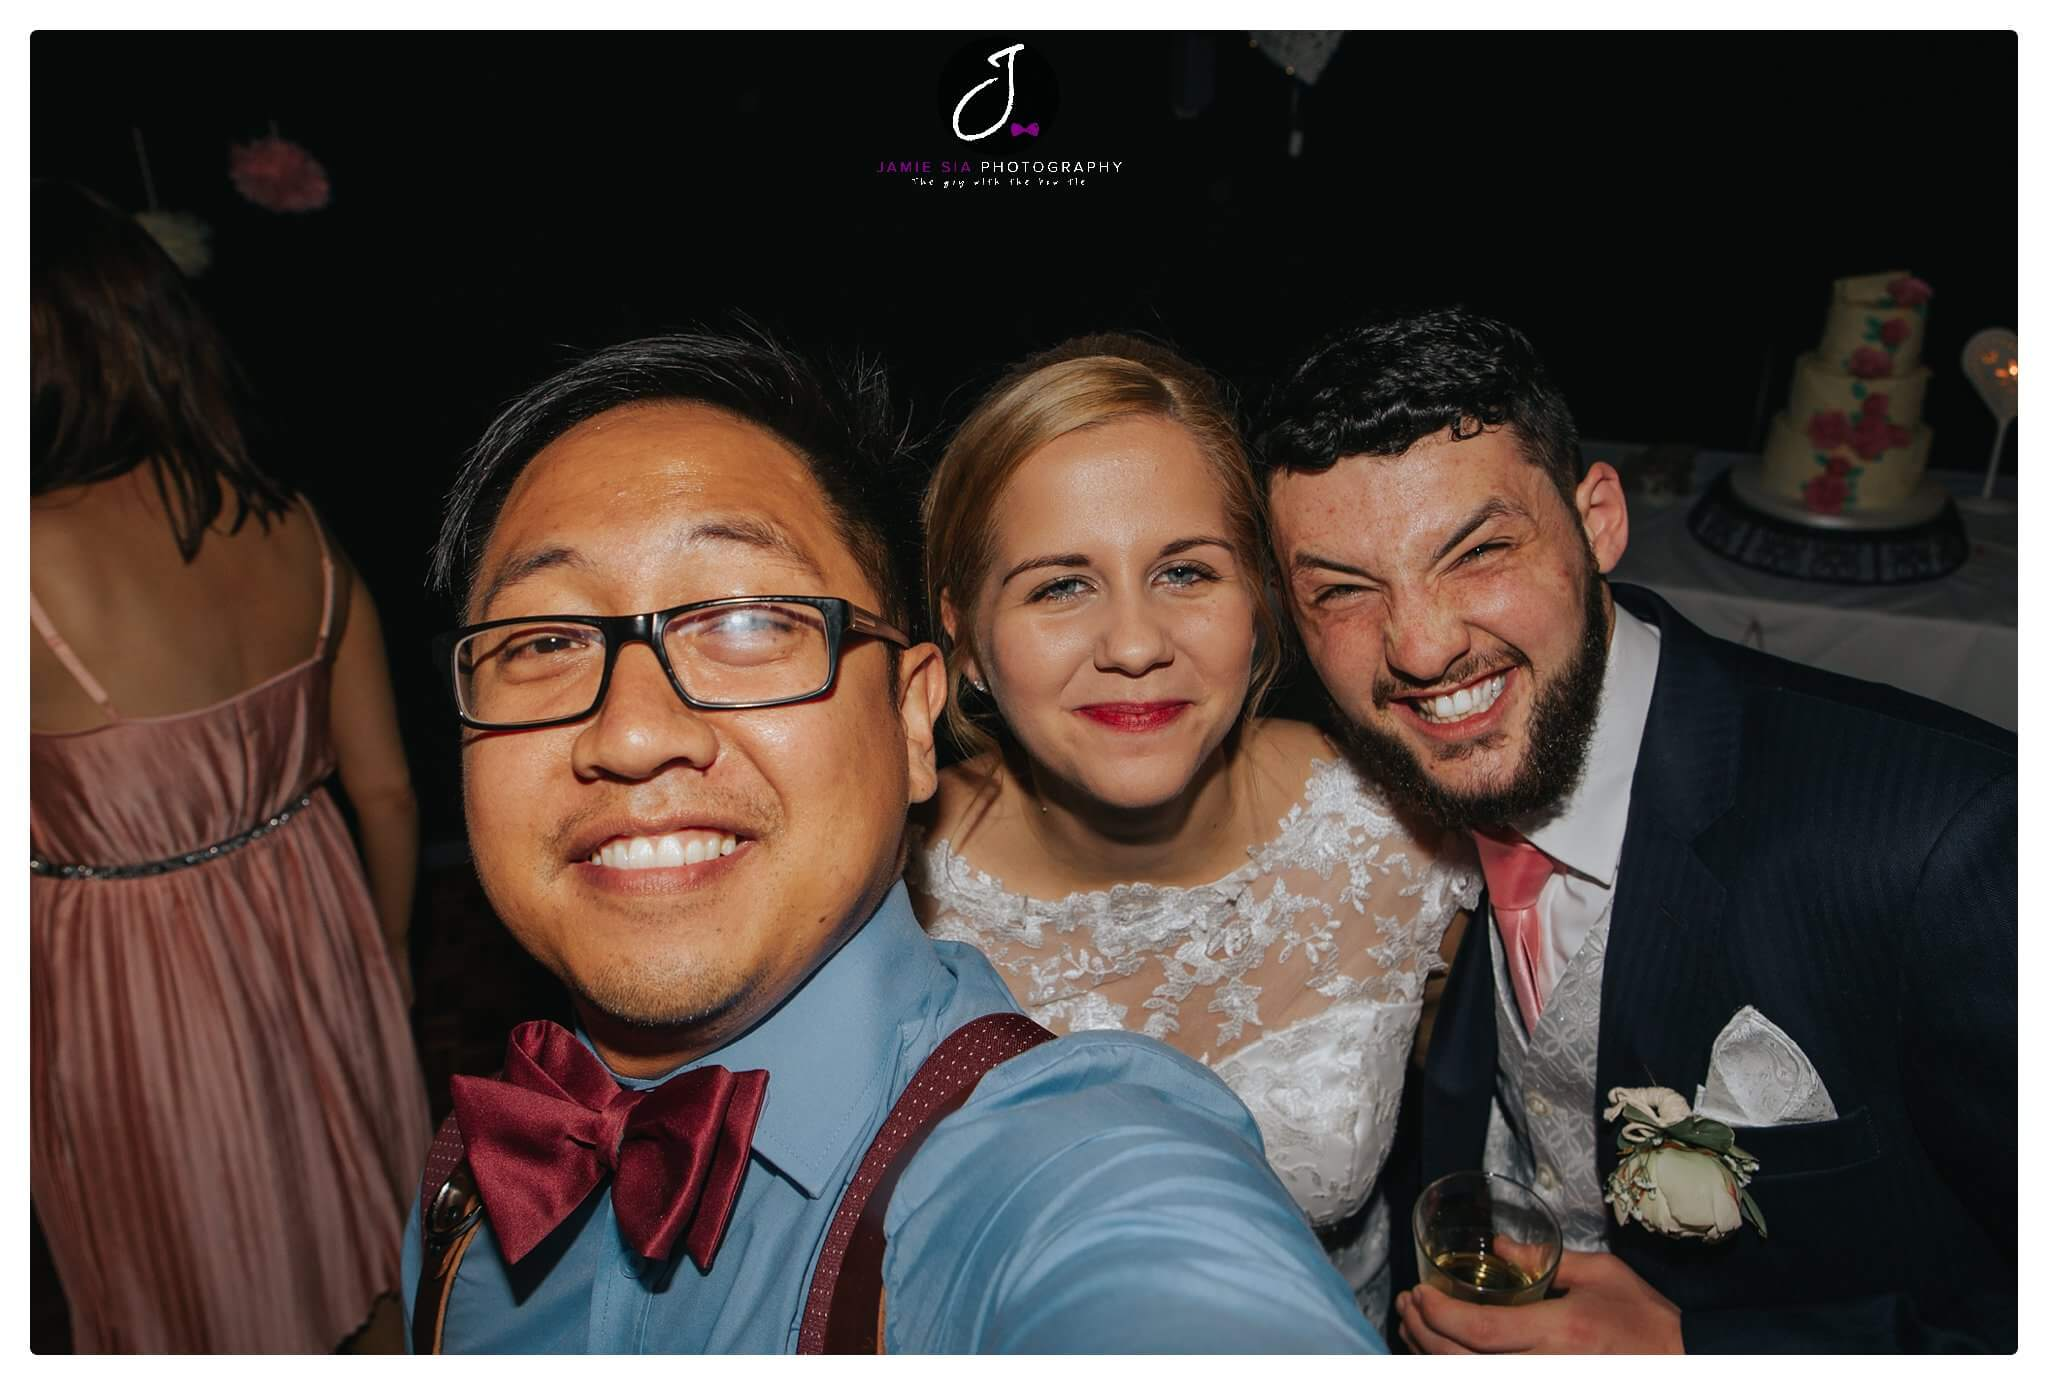 Fun bride and groom selfie Yorkshire wedding Jamie Sia Photography